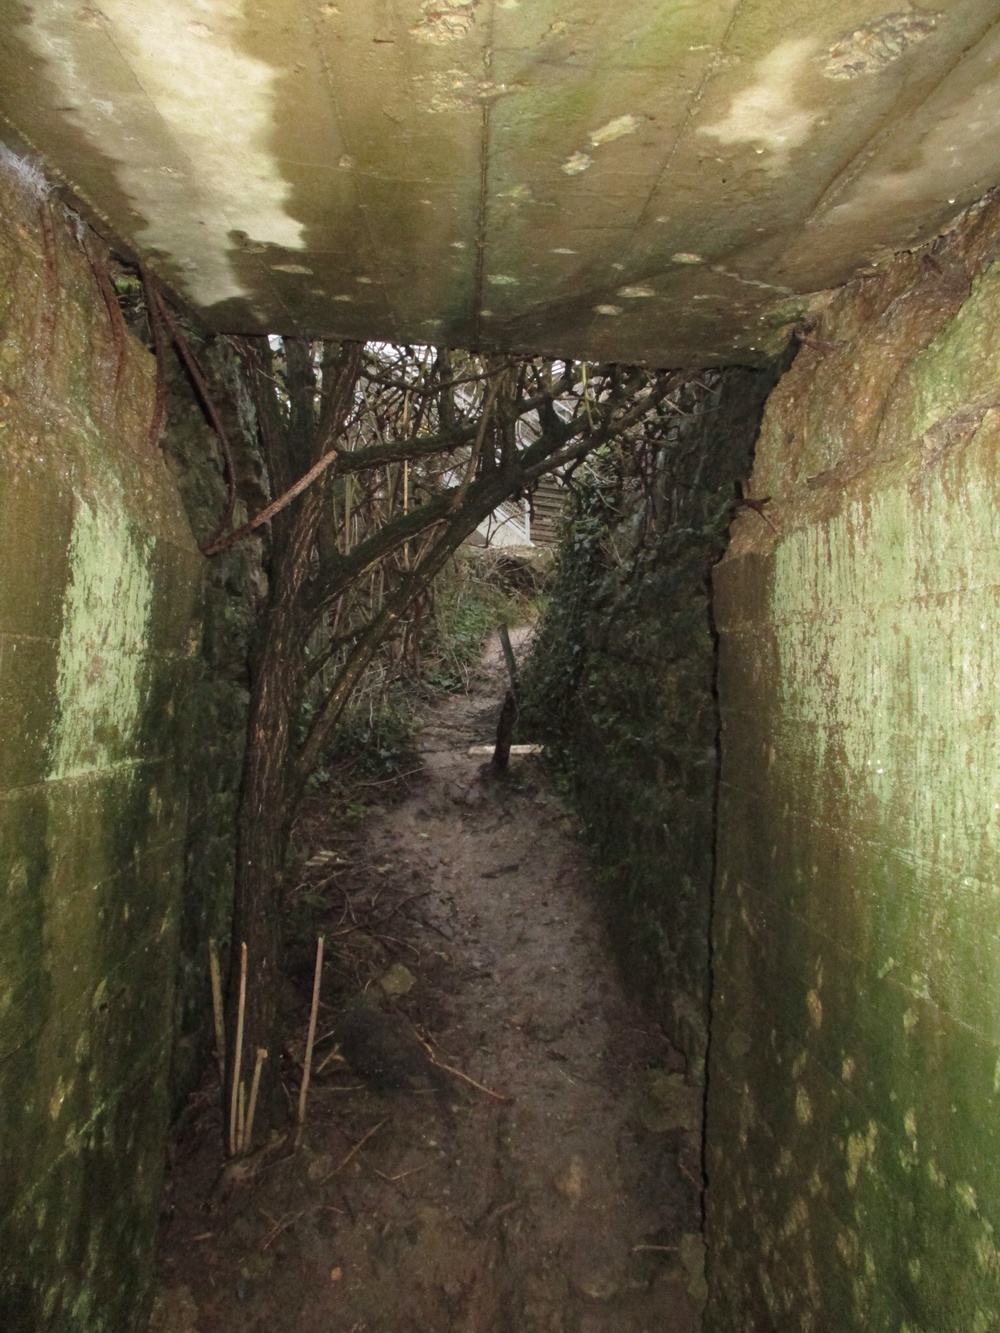 A portion of the bunker system remains intact at Pointe-du-Hoc